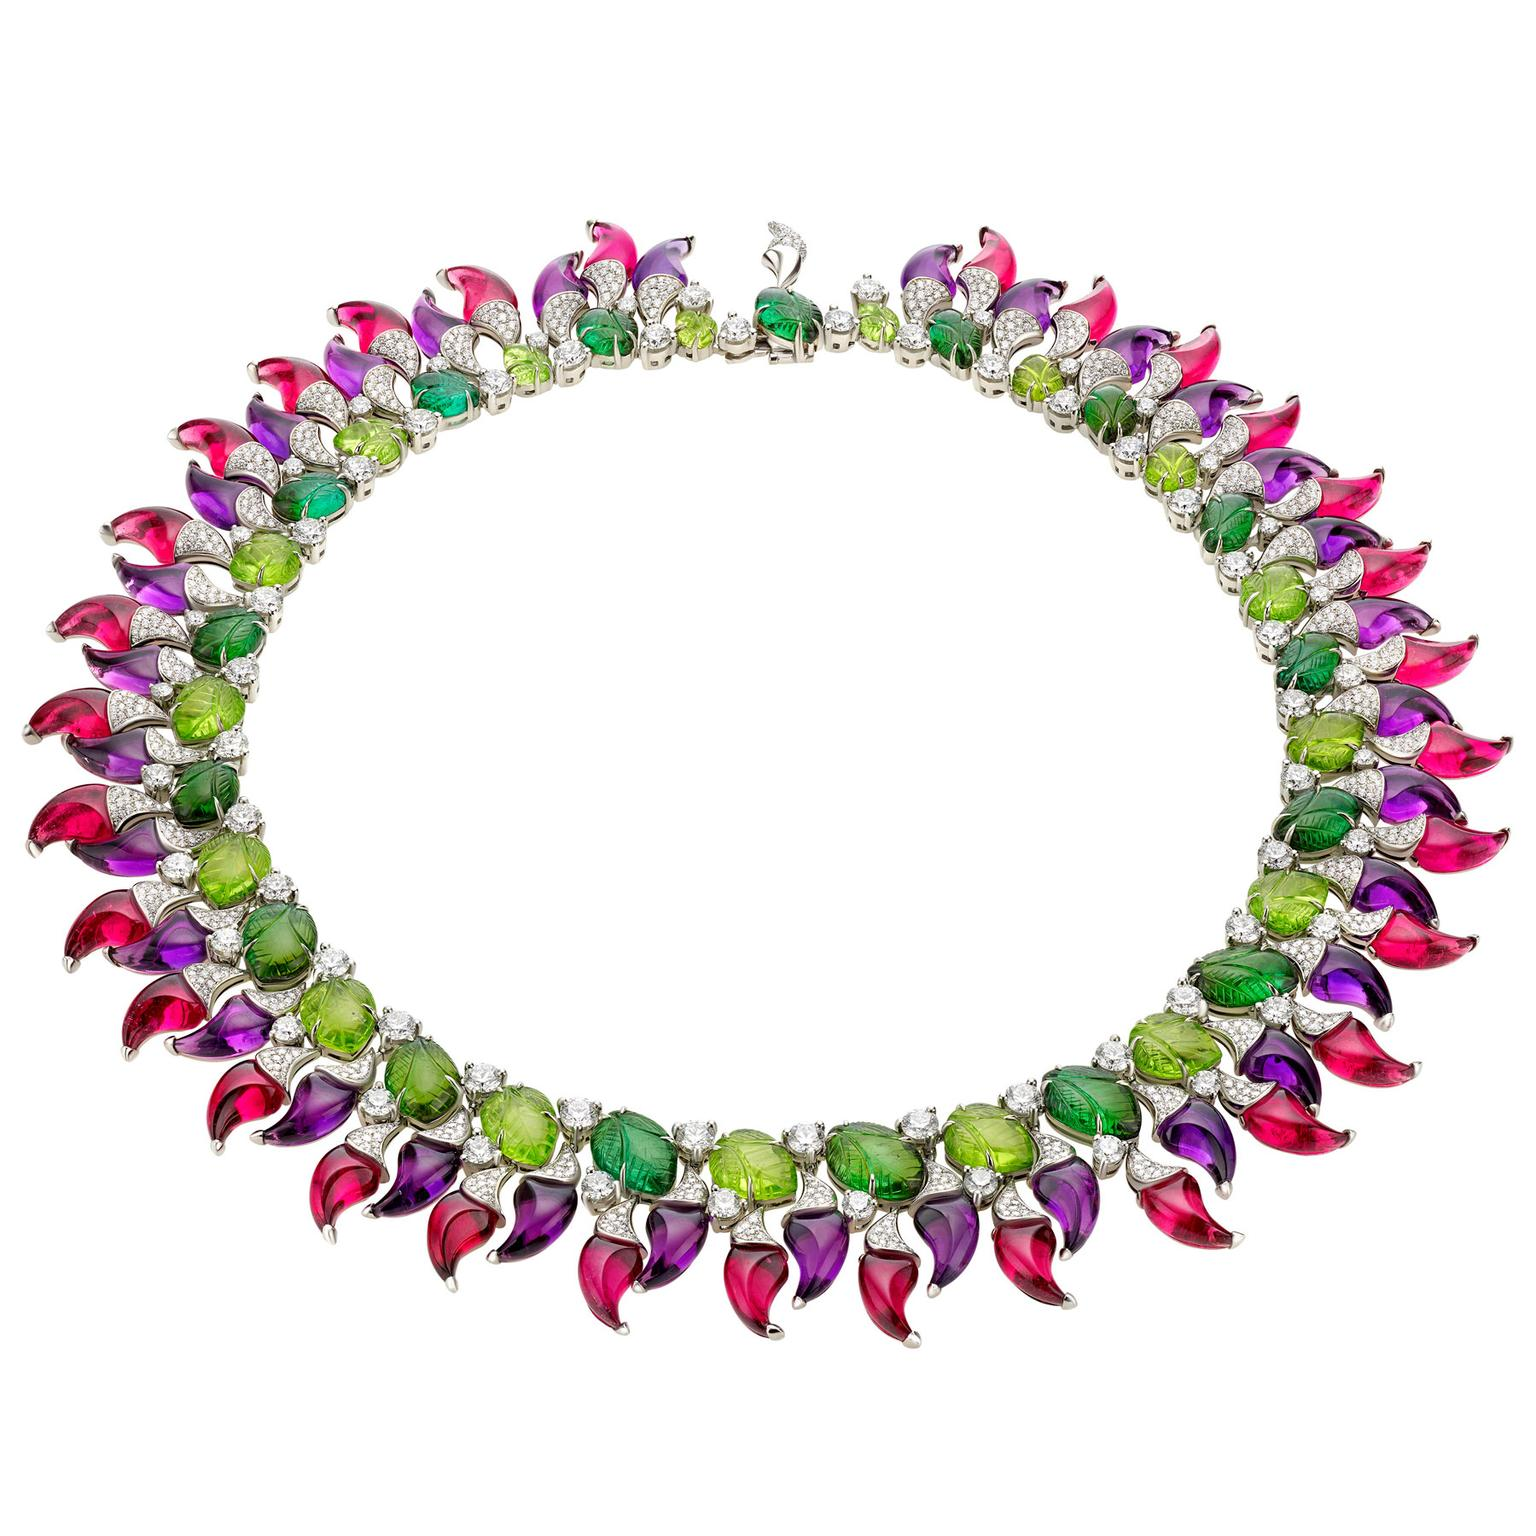 Bulgari Peperoncini Festa necklace